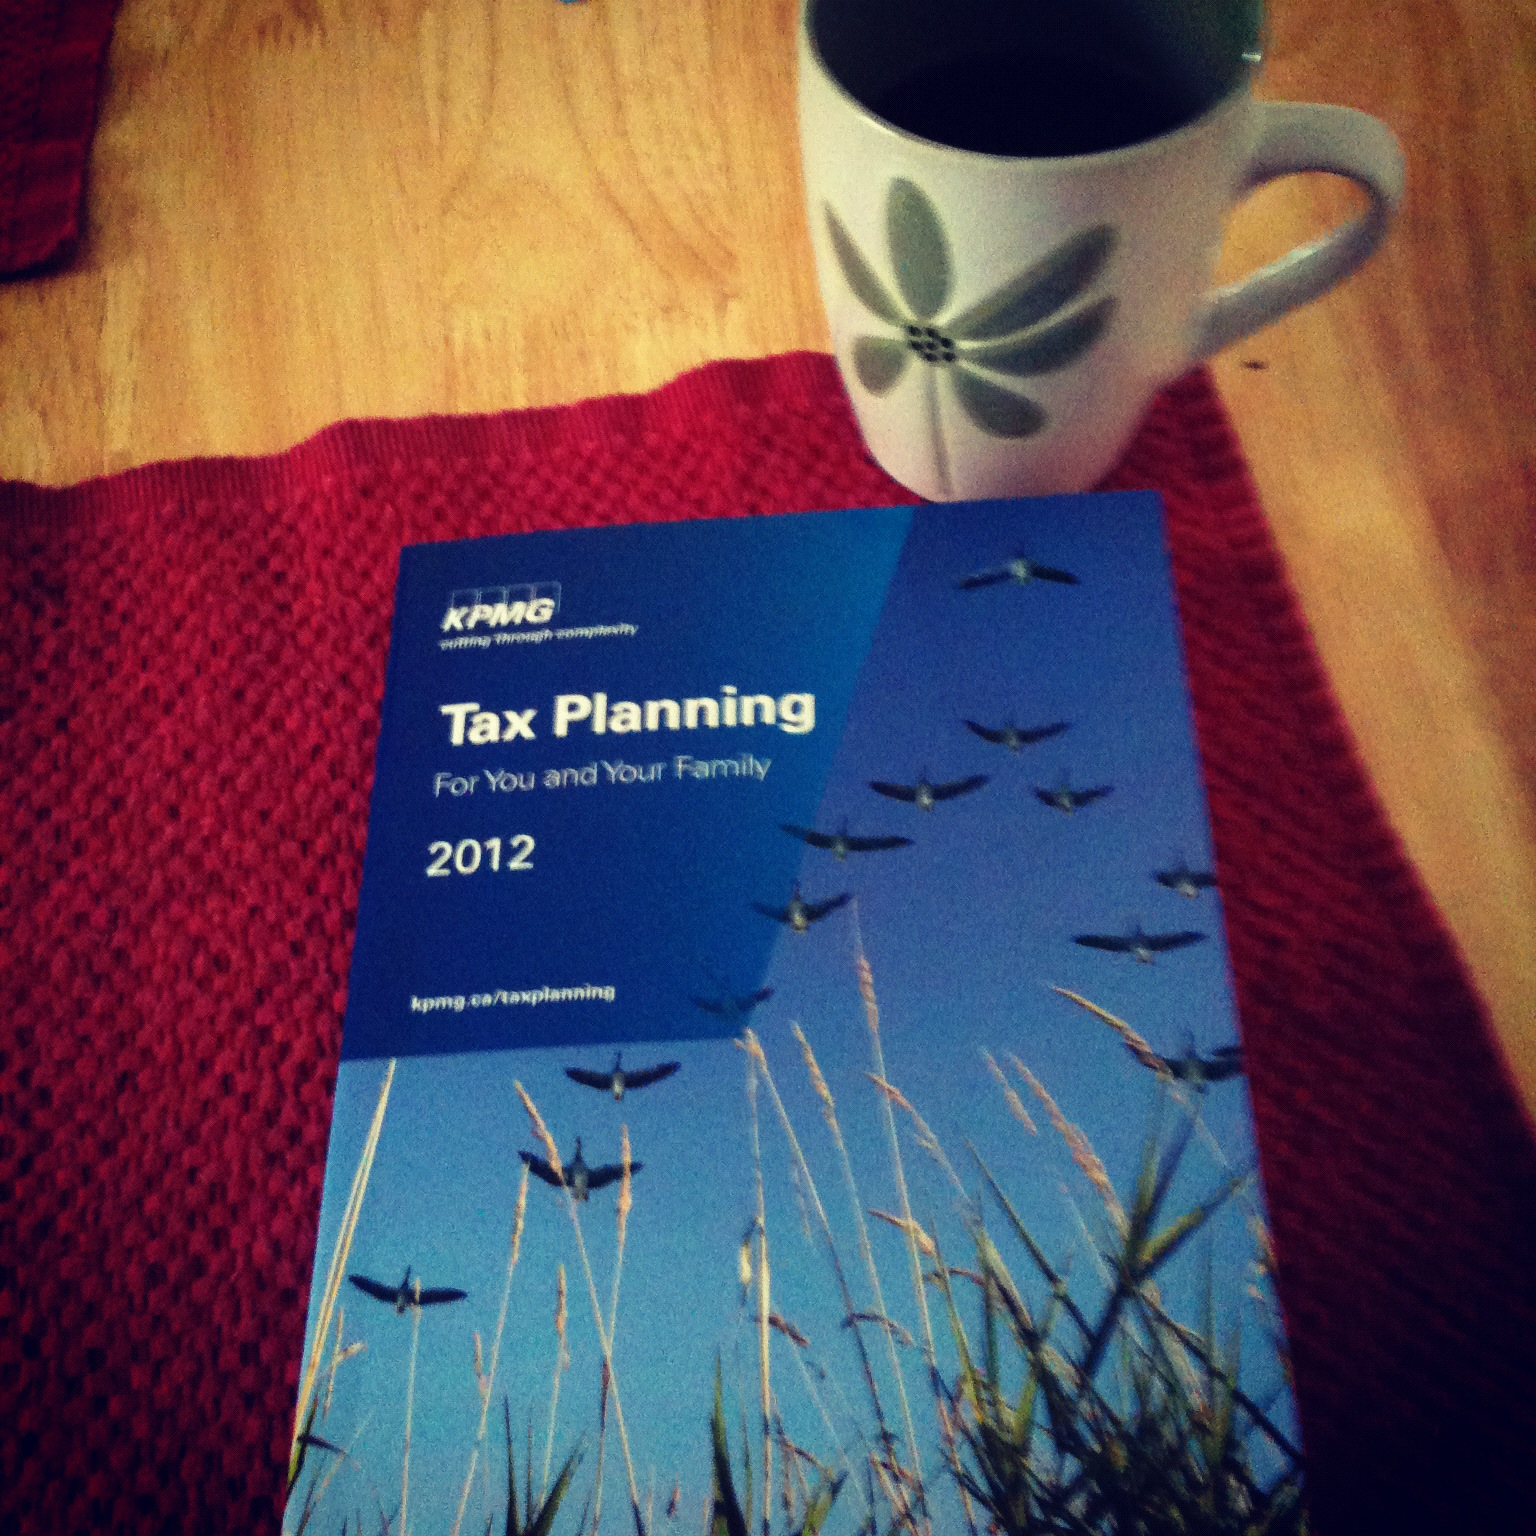 Book cover photo of tax planning for you and your family 2012